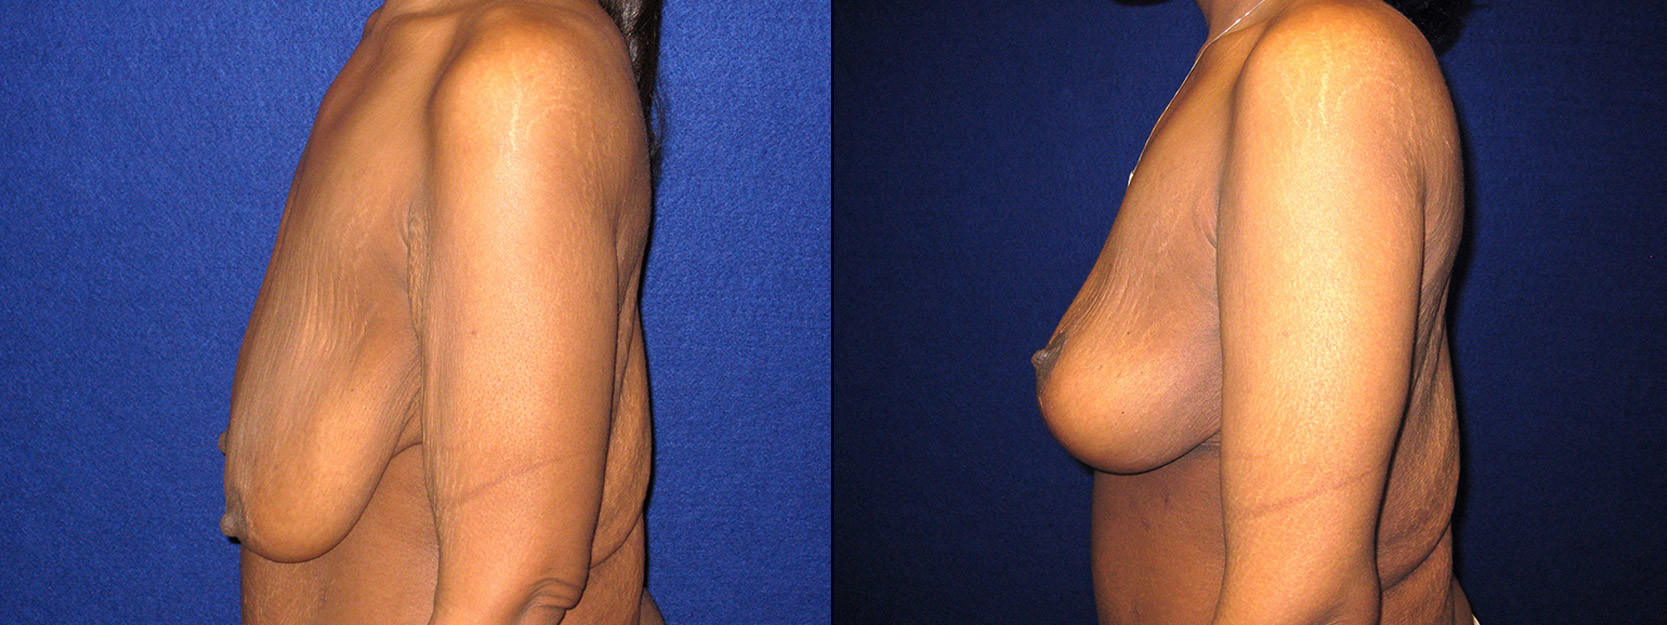 Left Profile View - Breast Lift and Arm Lift After Massive Weight Loss